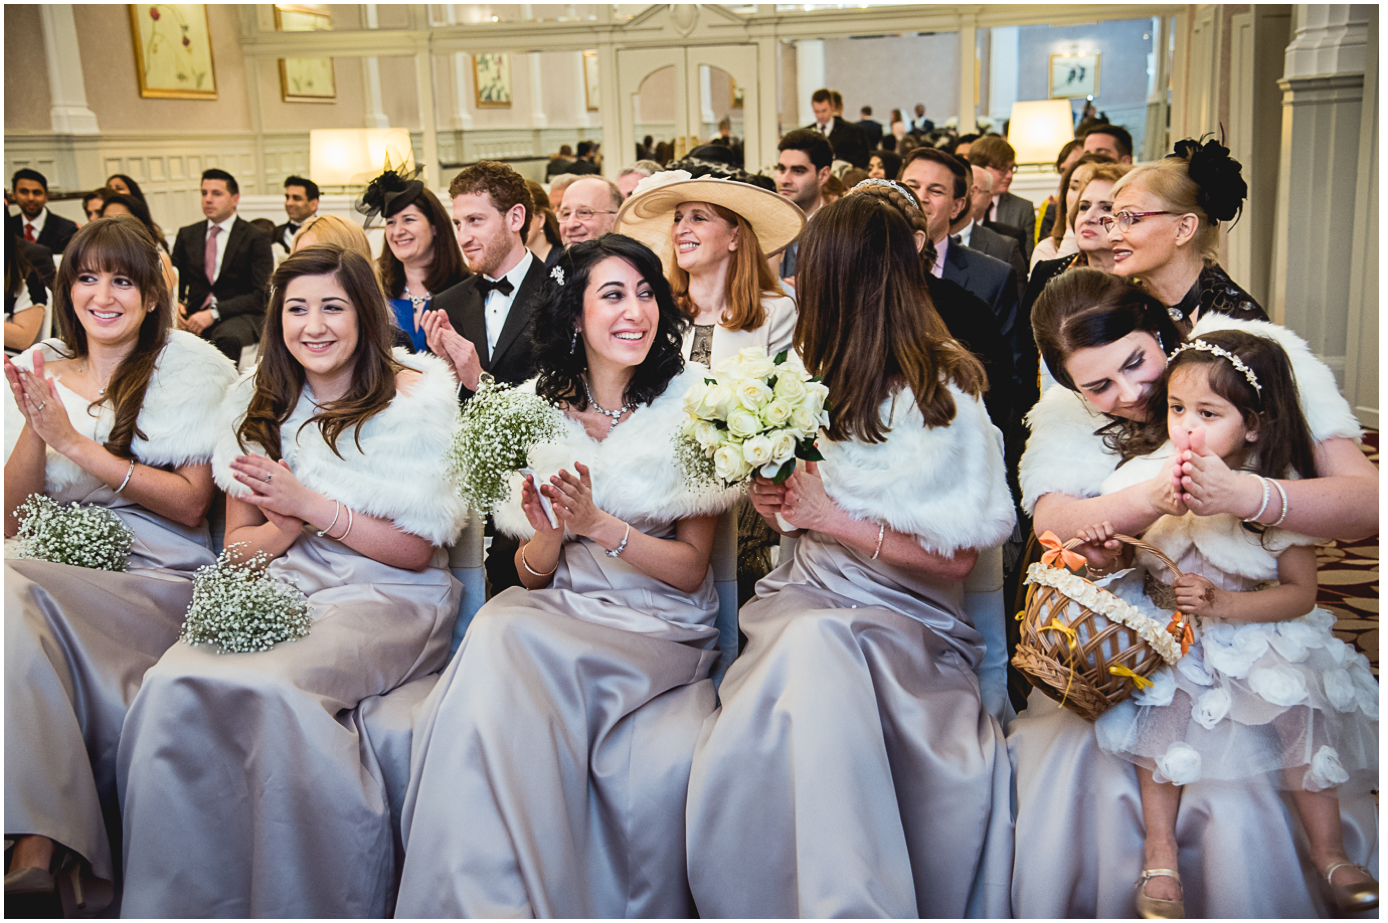 33 - Esmat and Angus - St. Ermin's Hotel London wedding photographer